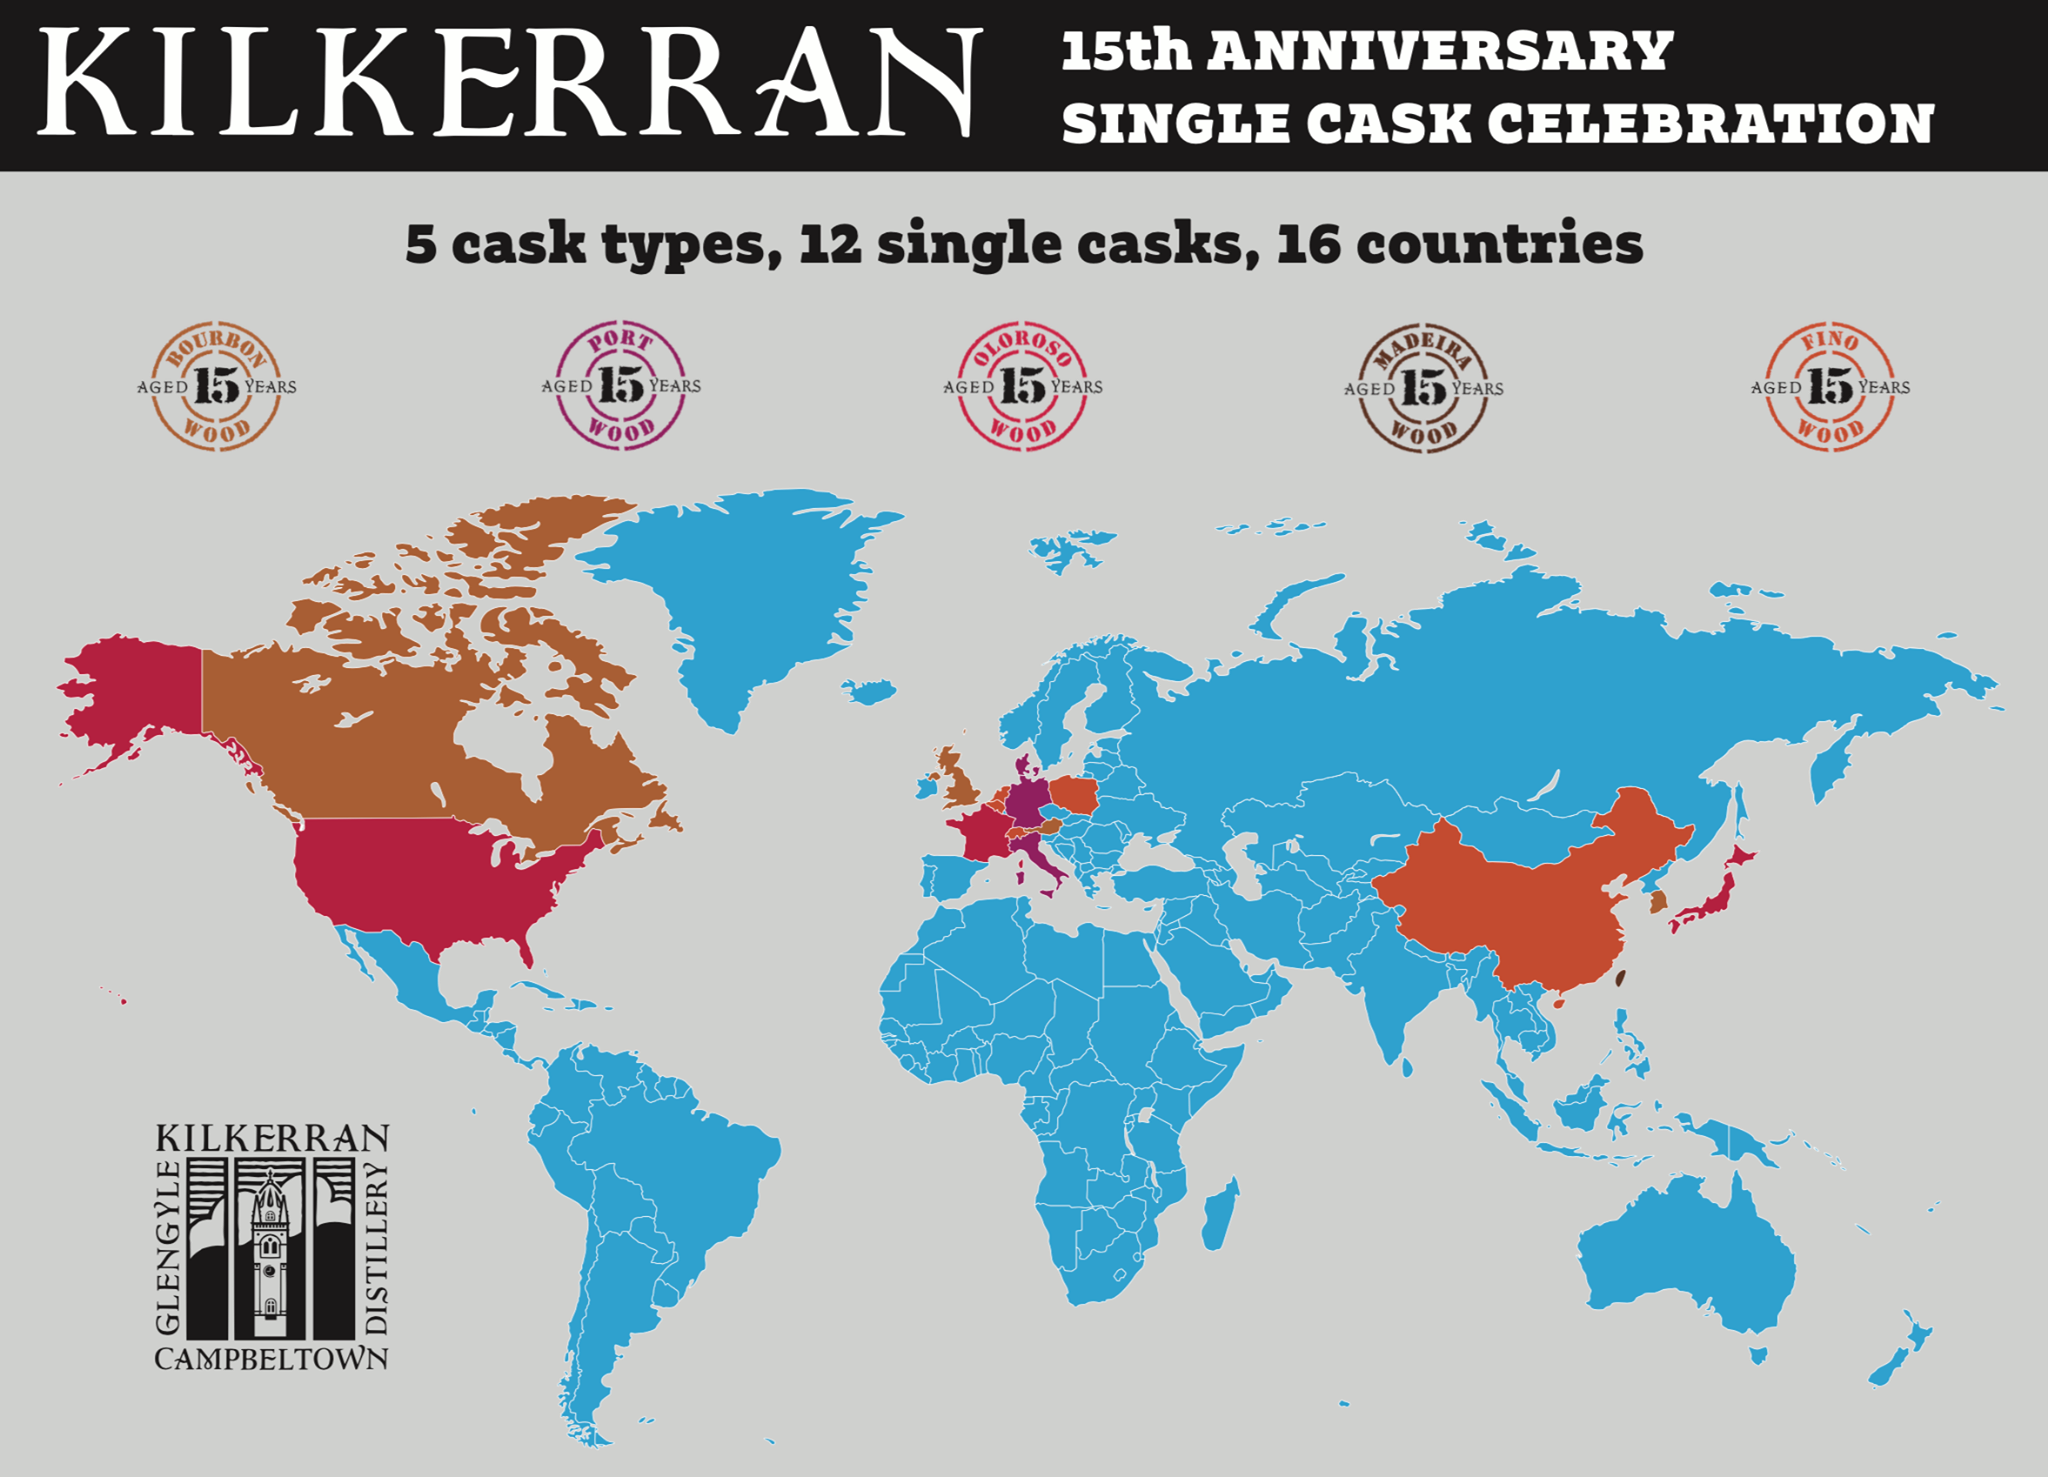 Kilkerran: 15th Anniversary Cask Celebration